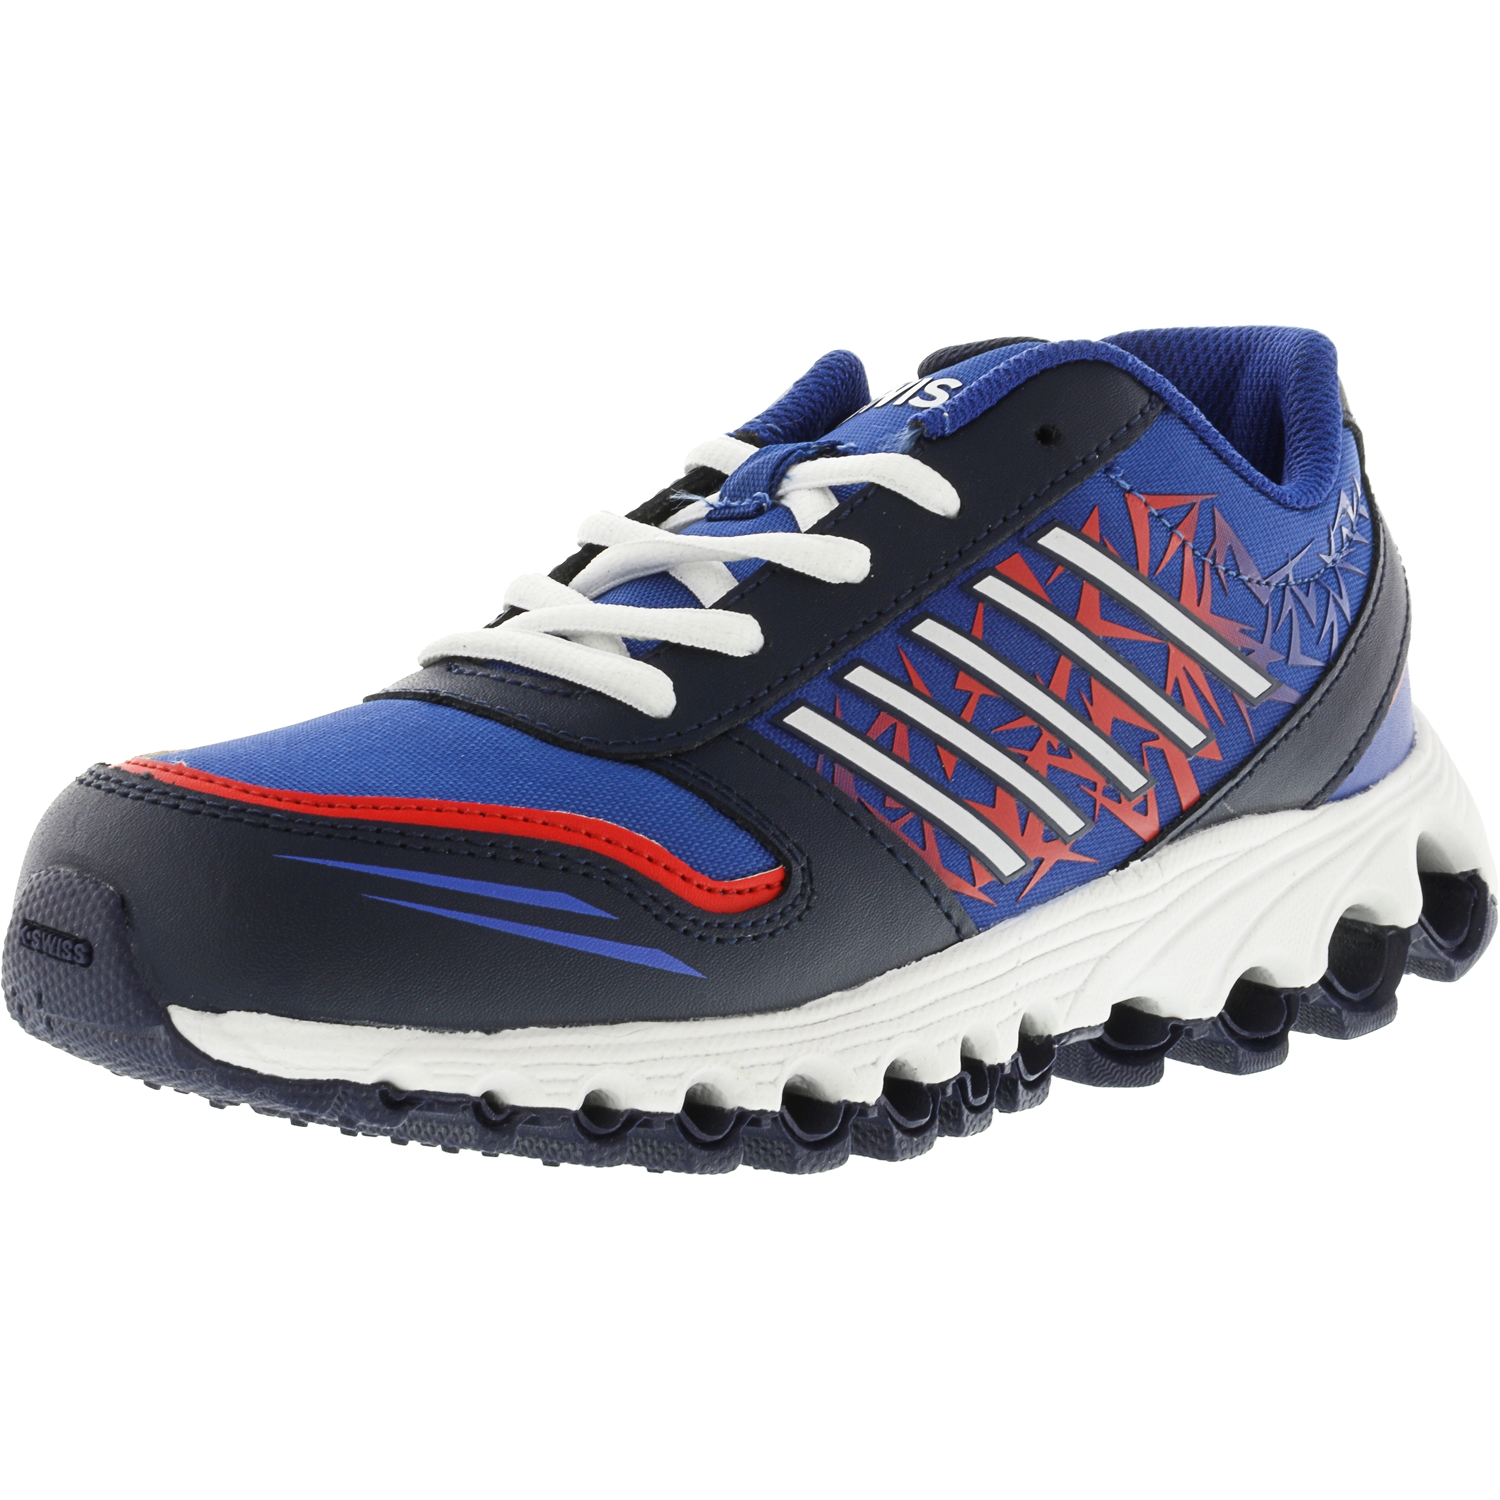 K-Swiss Boy's X-160 Low Navy   Classic Blue Fiery Red Ankle-High Training Shoes 4M by K-Swiss